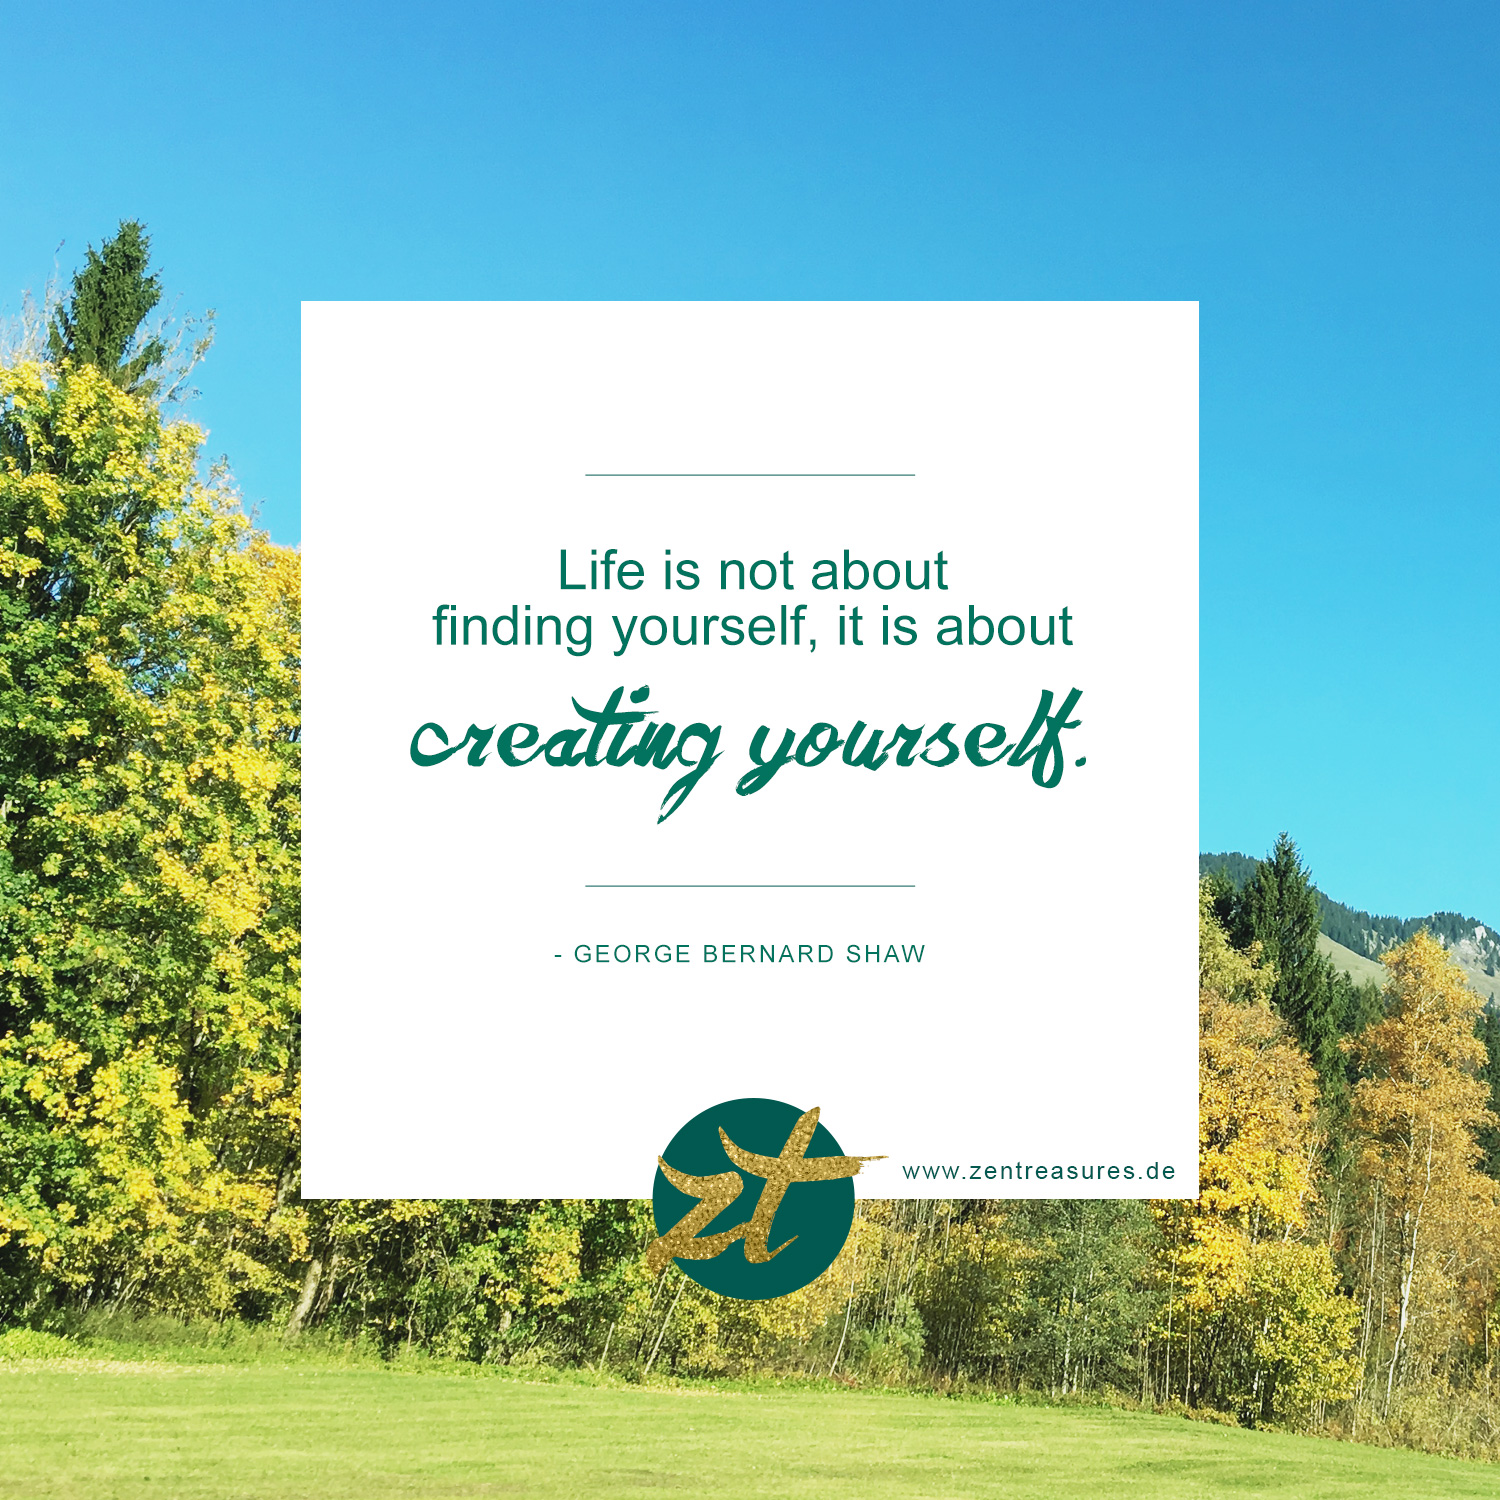 Life is not about finding yourself, it is about creating yourself. - Zitat von George Bernard Shaw